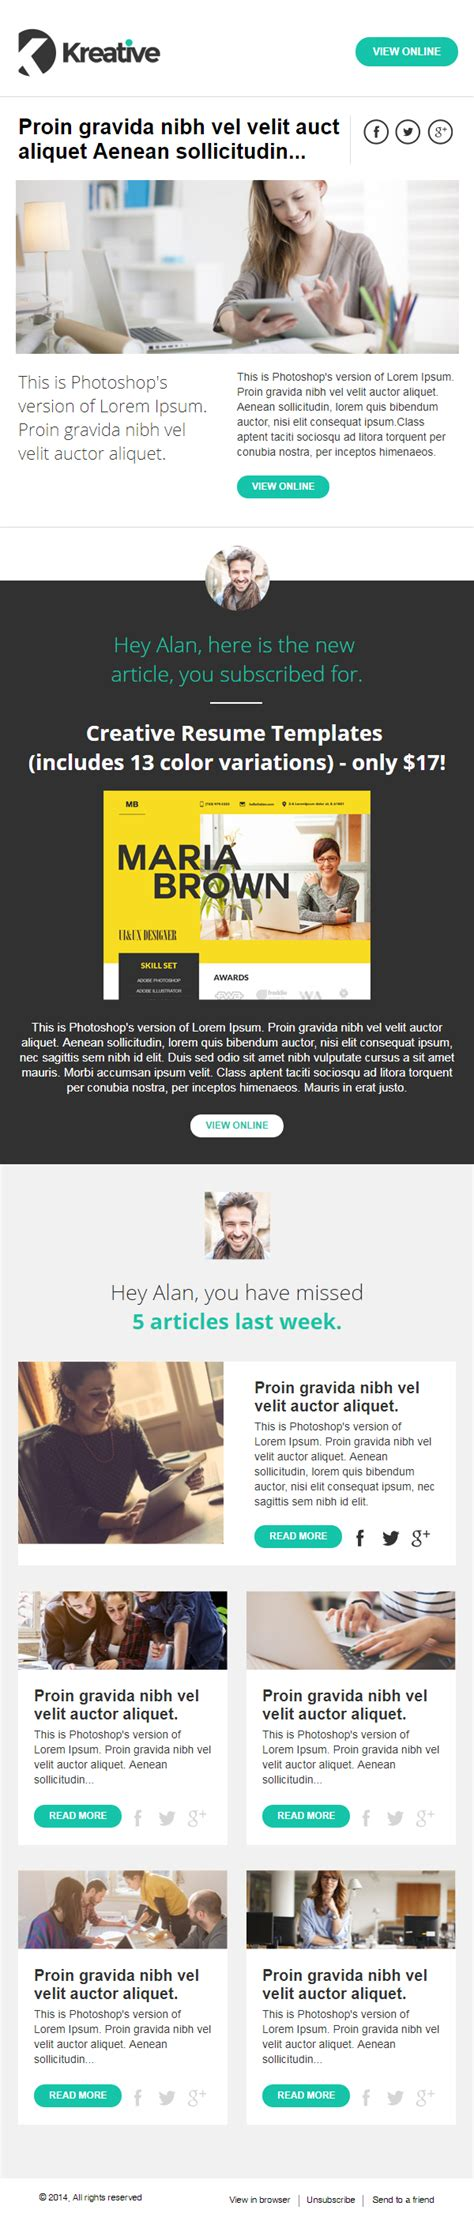 Free Email Newsletter Template Zippypixels Mail Newsletter Template